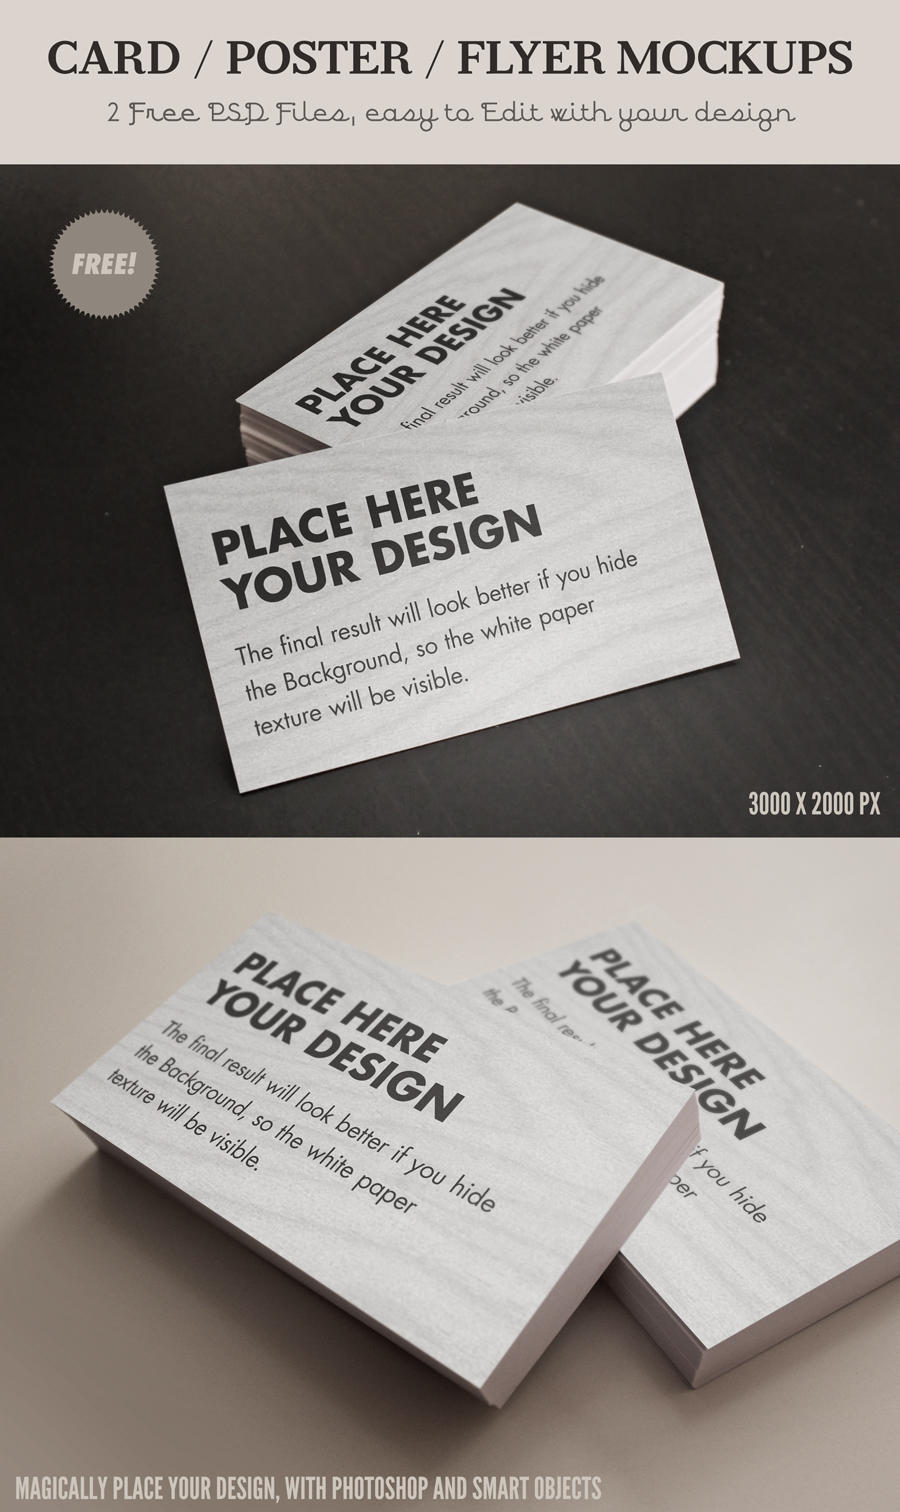 Free Card / Flyer mock-ups - Psd files in high res by Giallo86